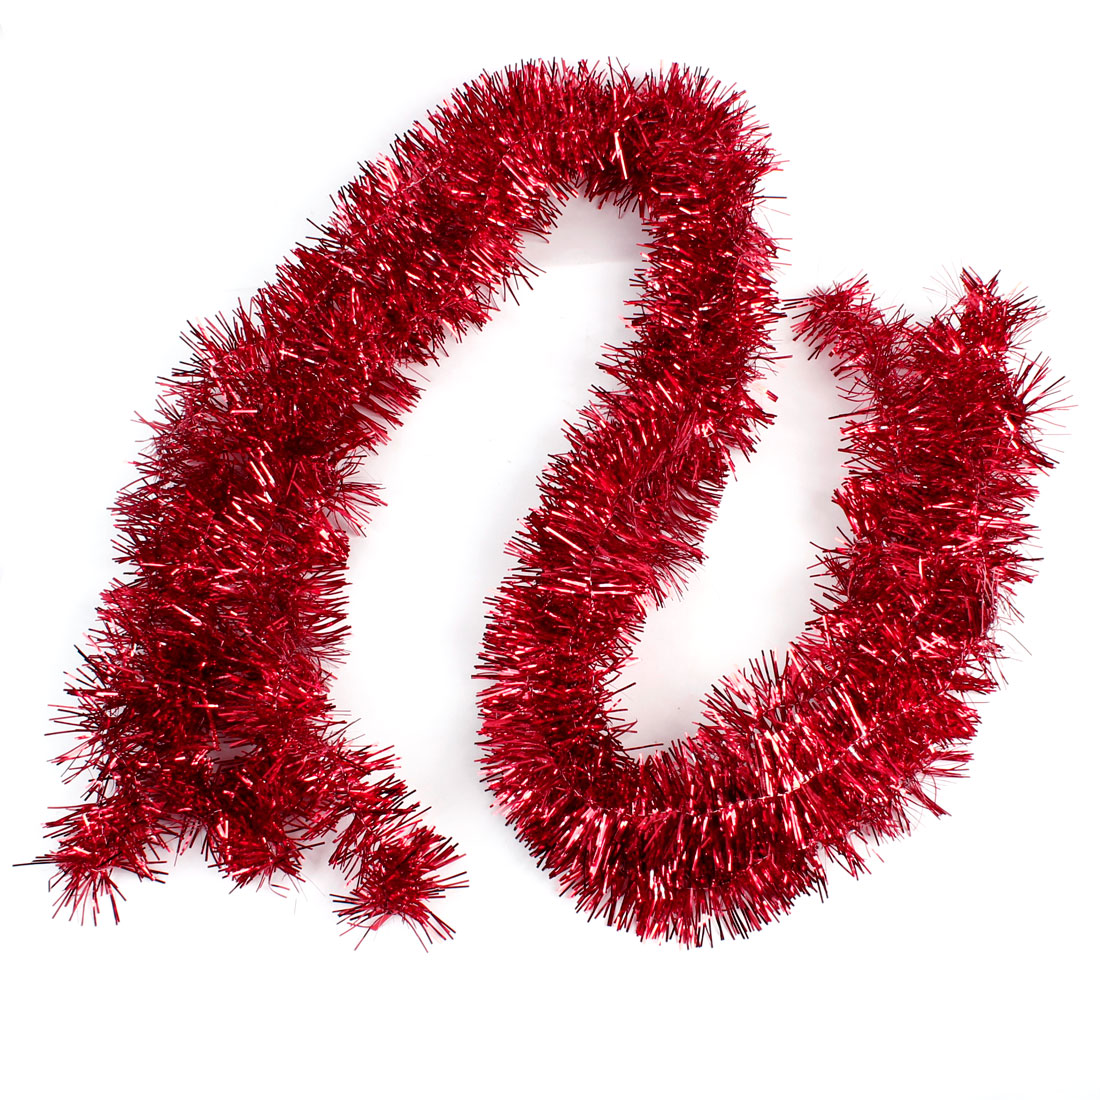 Christmas Party Wedding Tinsel Sparkly Fluffy Decor Garland Red 180 x 6cm 5 PCS